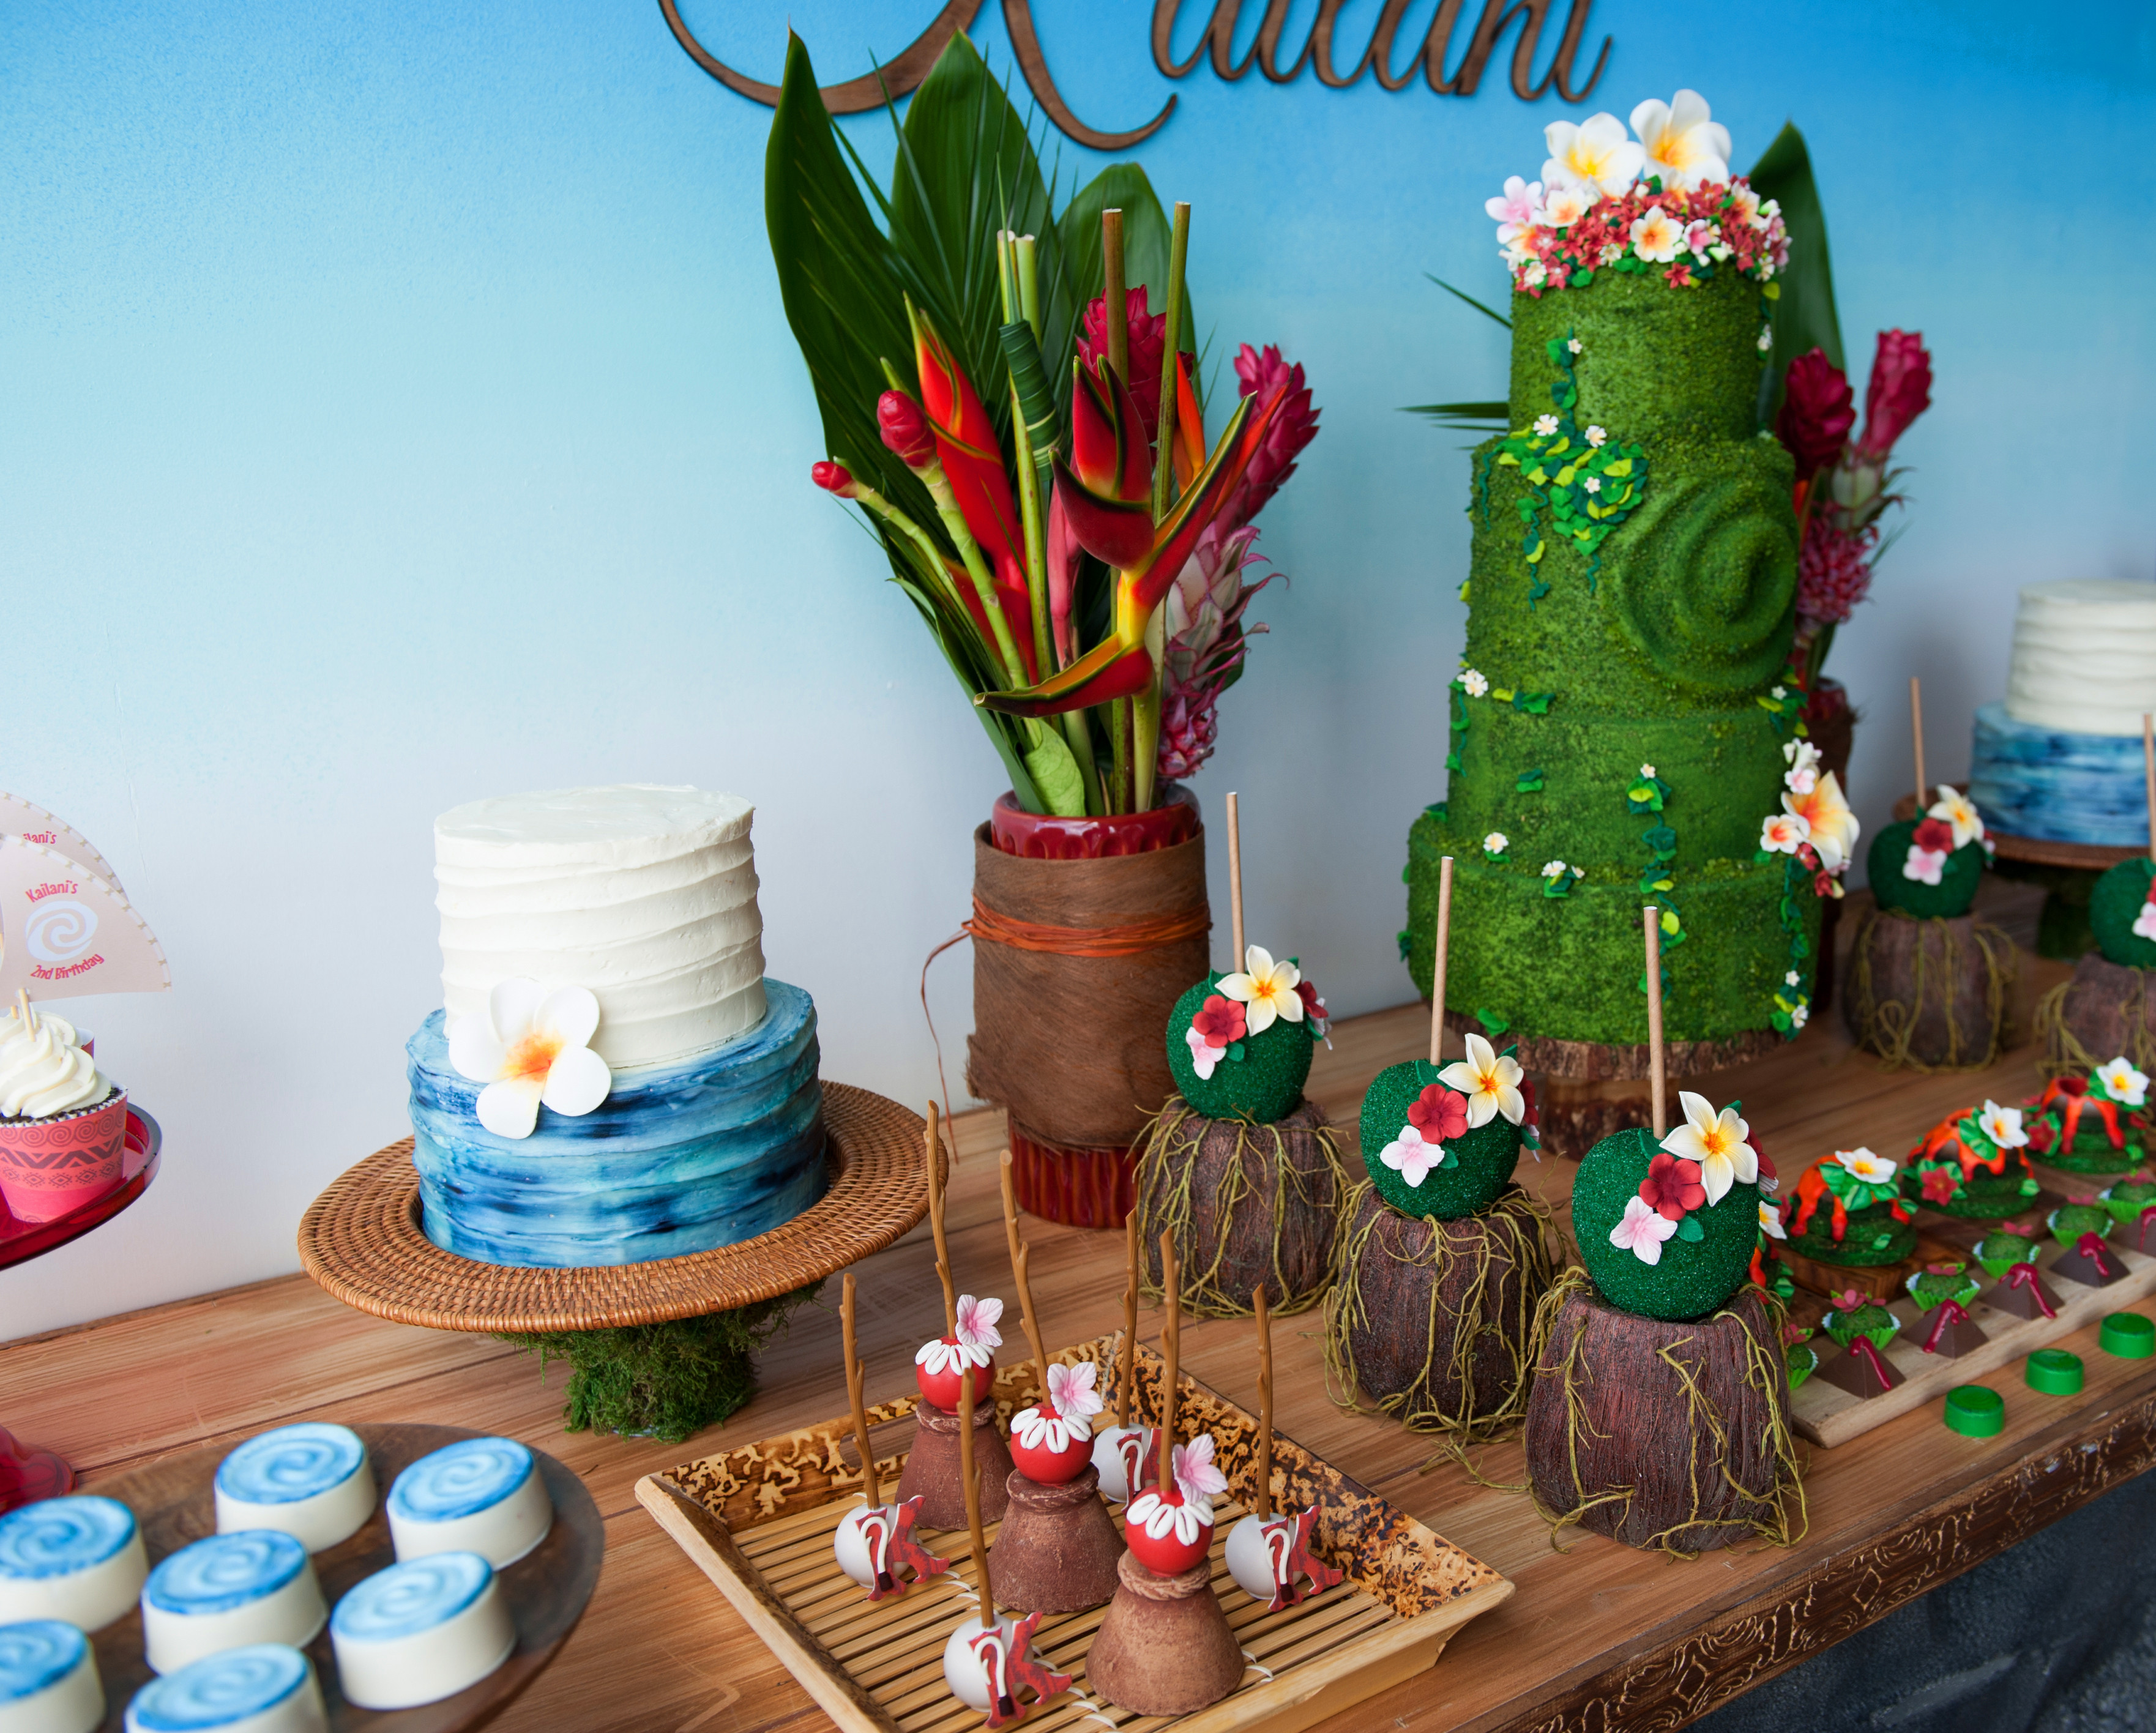 Best ideas about Moana Birthday Party Decorations . Save or Pin Moana Themed Birthday Party Now.